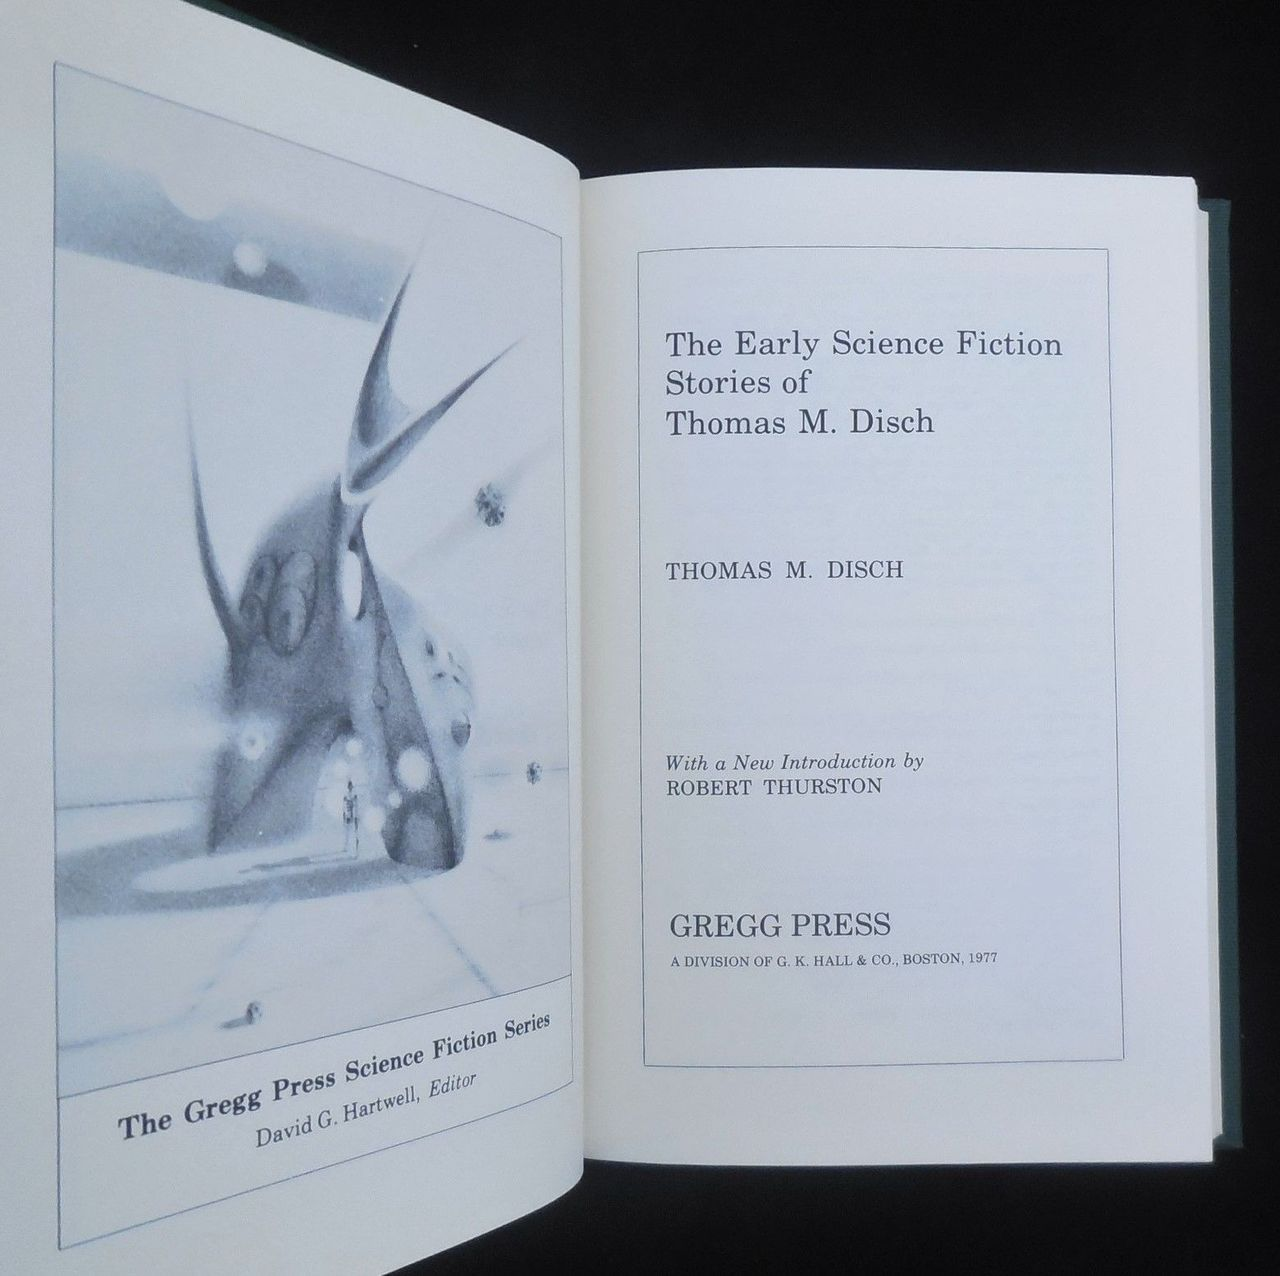 THE EARLY SCIENCE FICTION STORIES OF THOMAS M. DISCH, by Thomas M. Disch - 1977